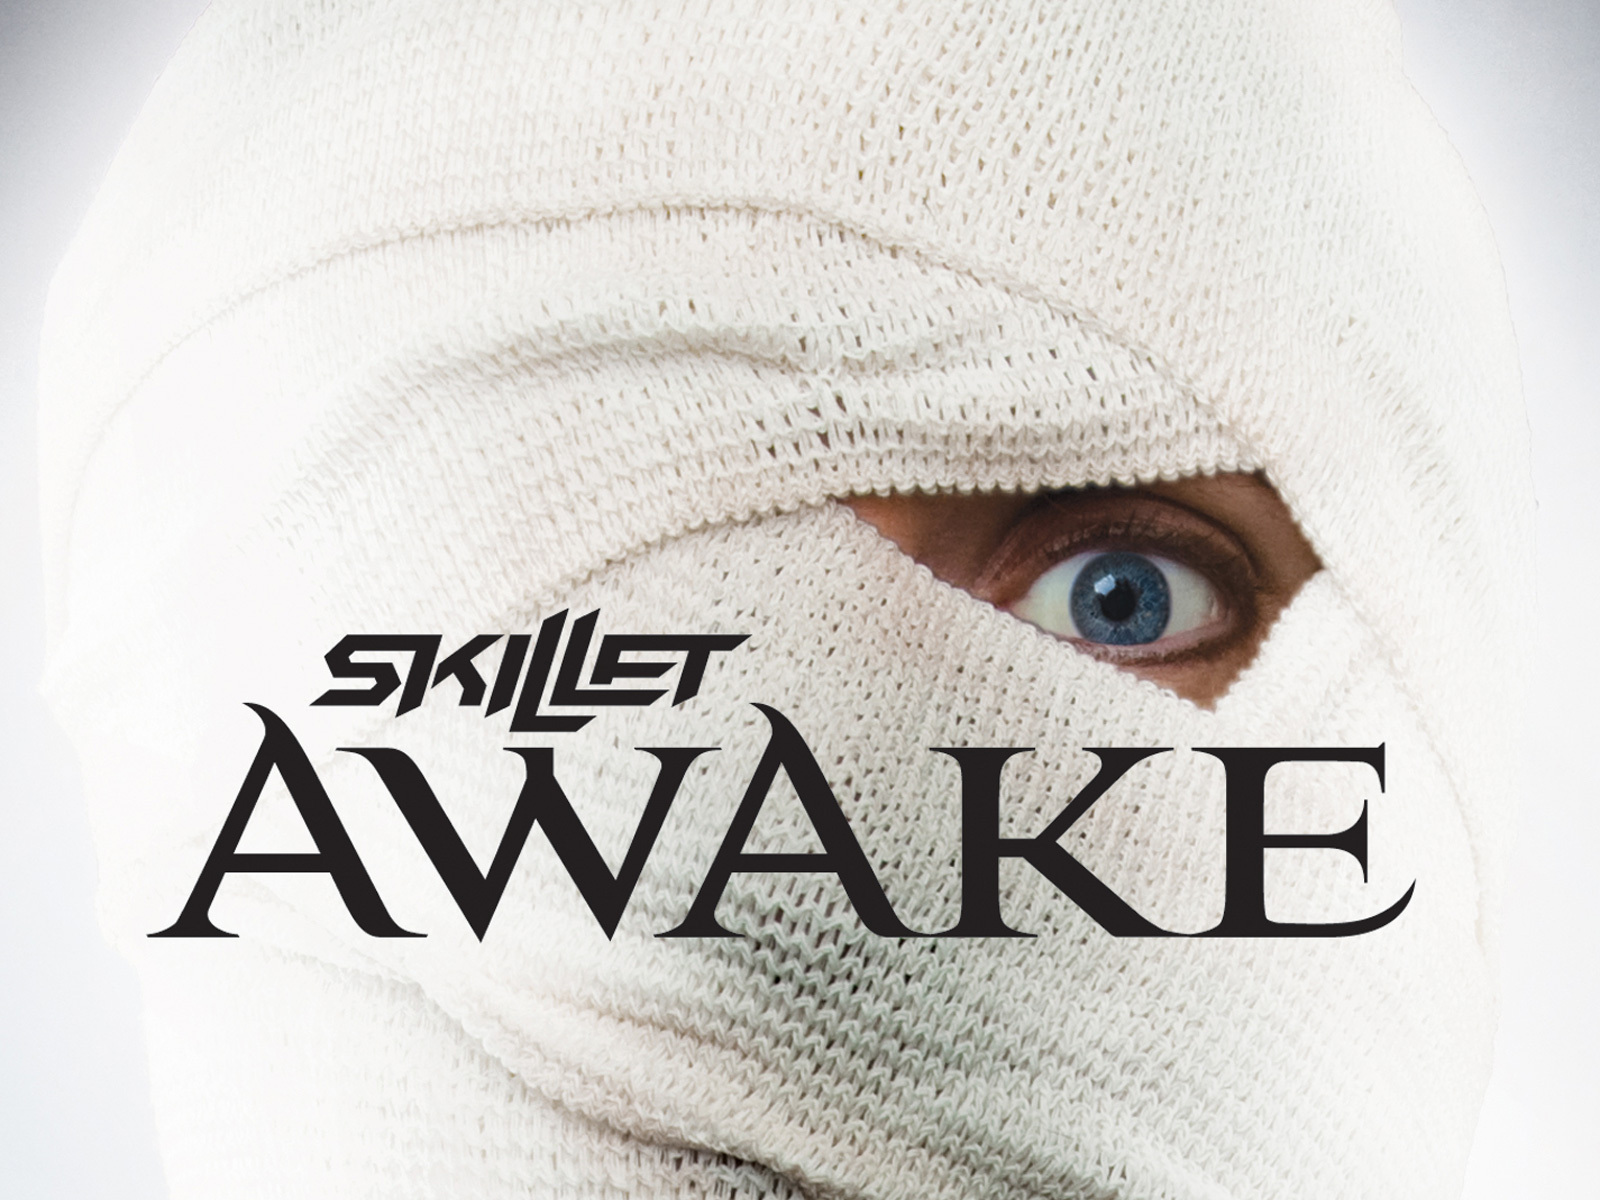 Skillet Images Skillet Awake Wallpaper Hd Wallpaper And